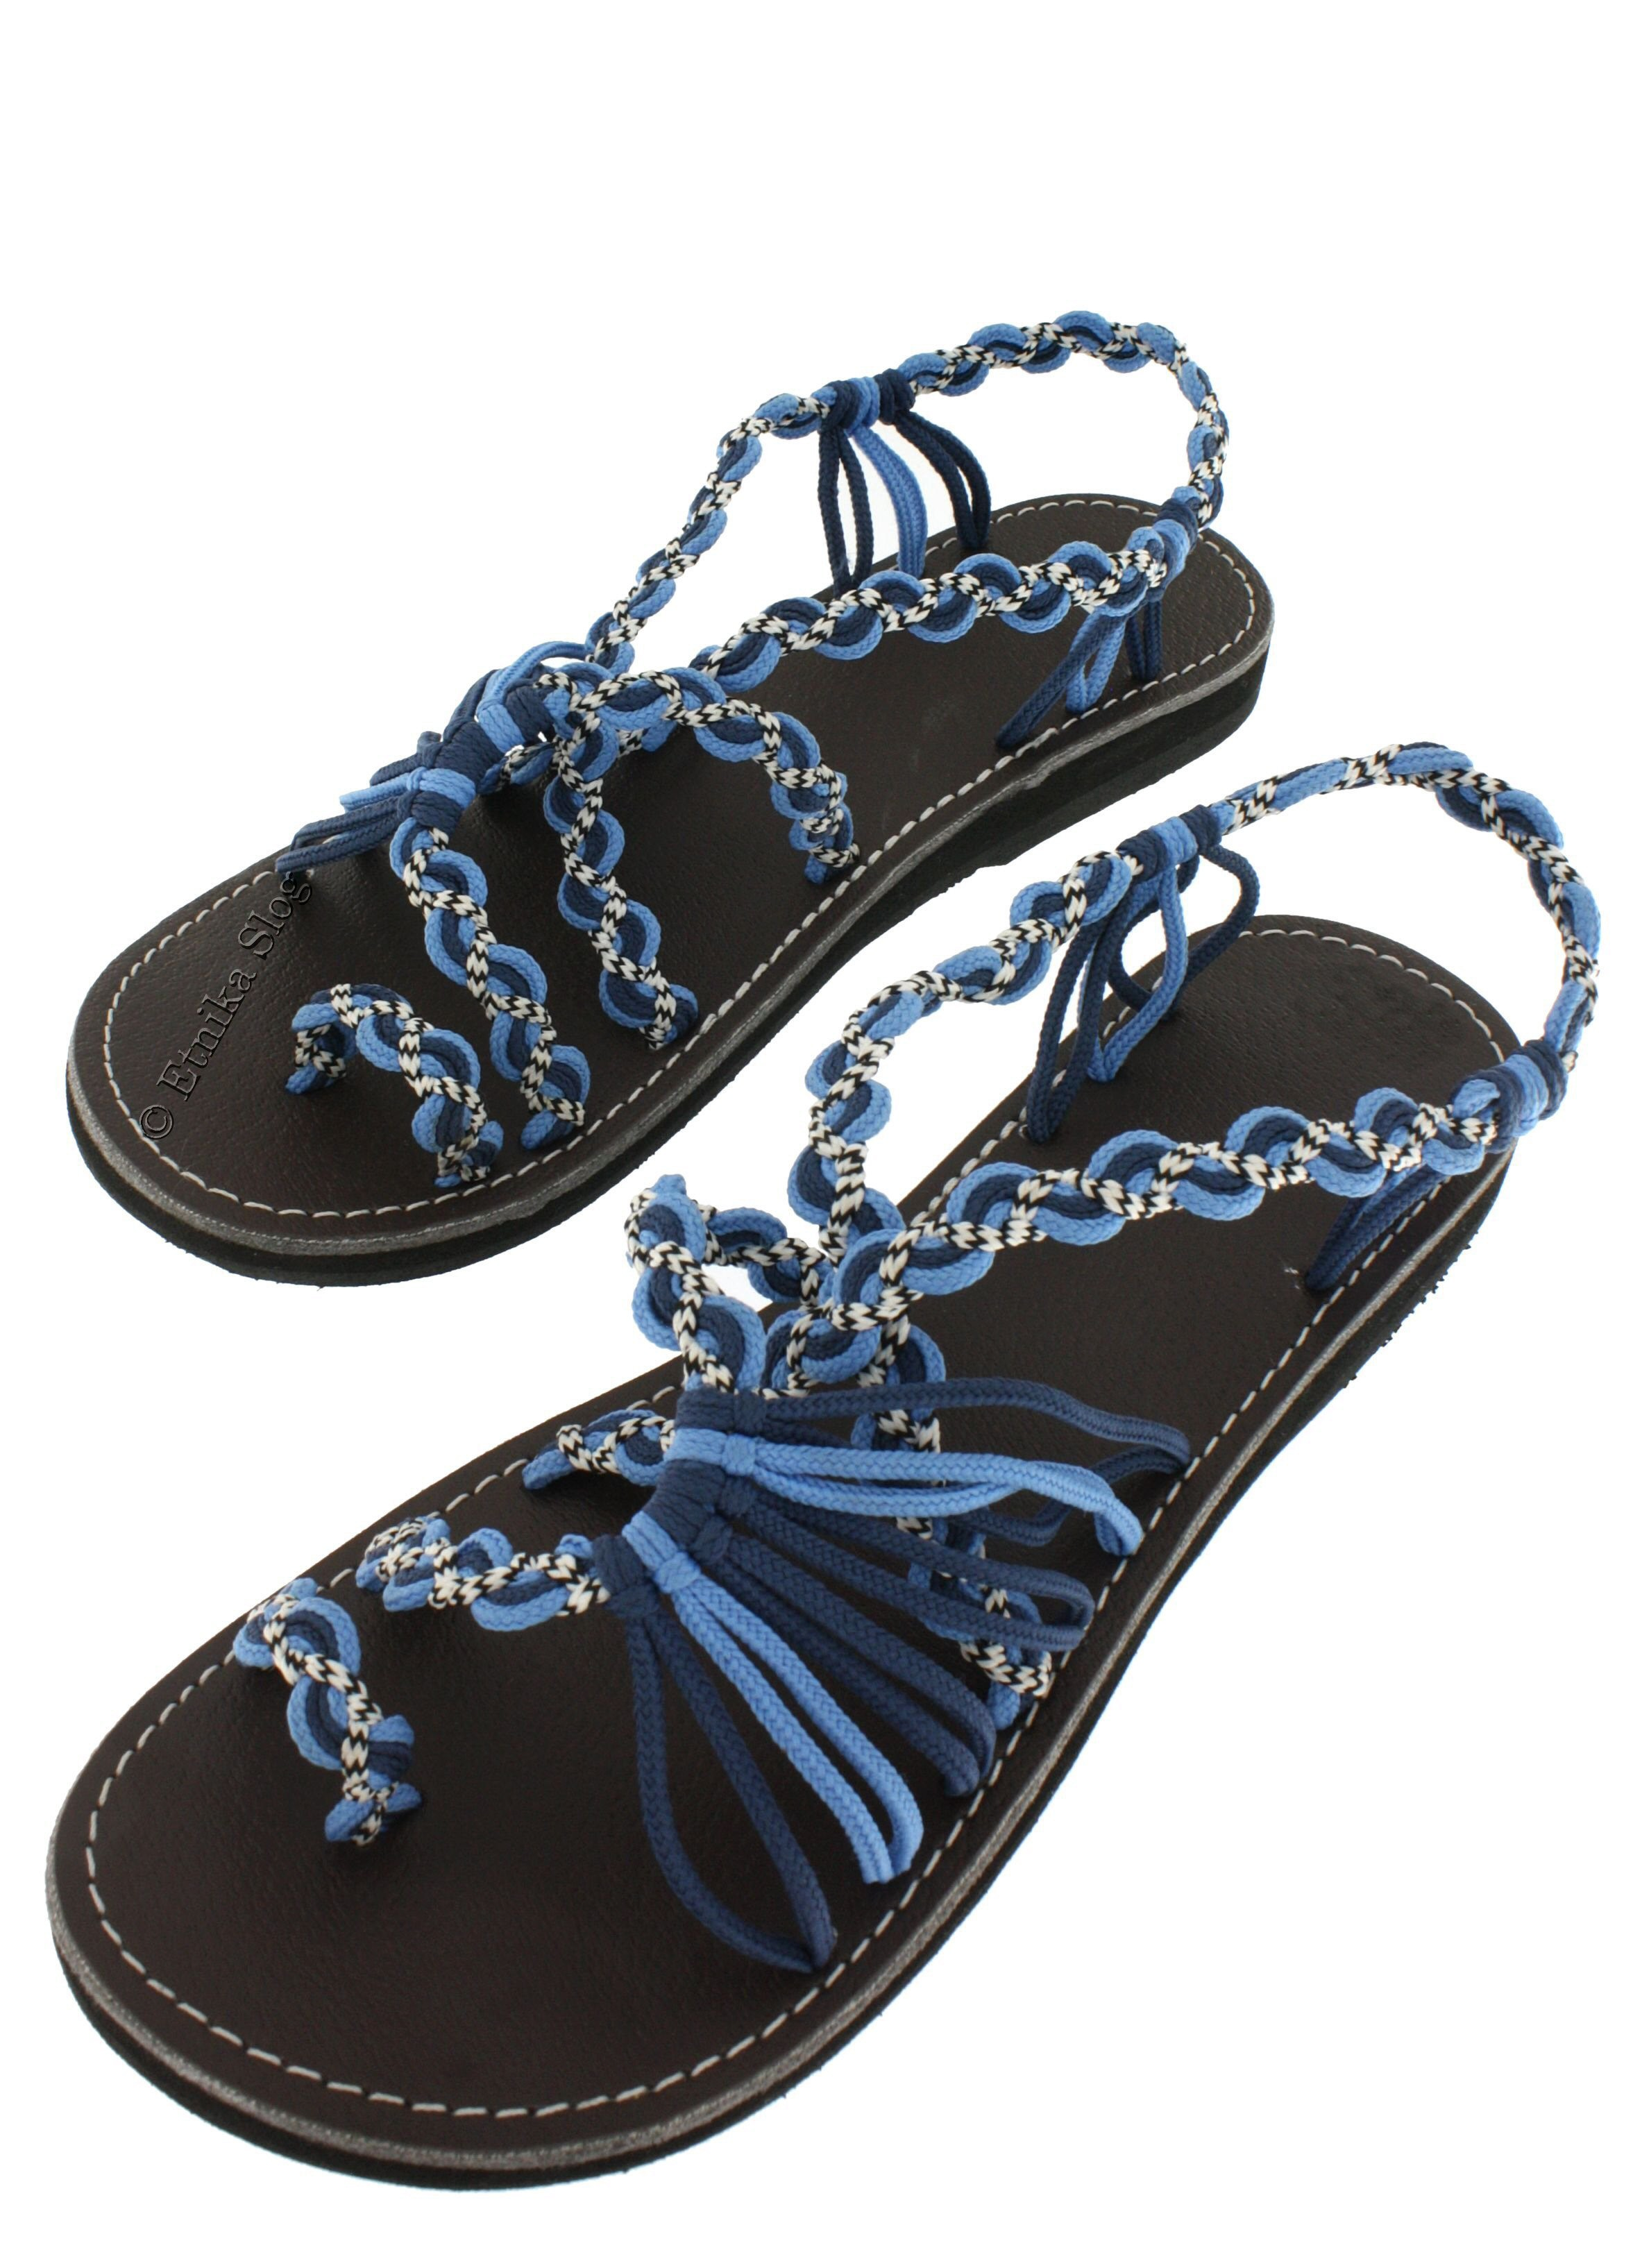 SANDALS IN LEATHER SN-AP05-AB - Oriente Import S.r.l.